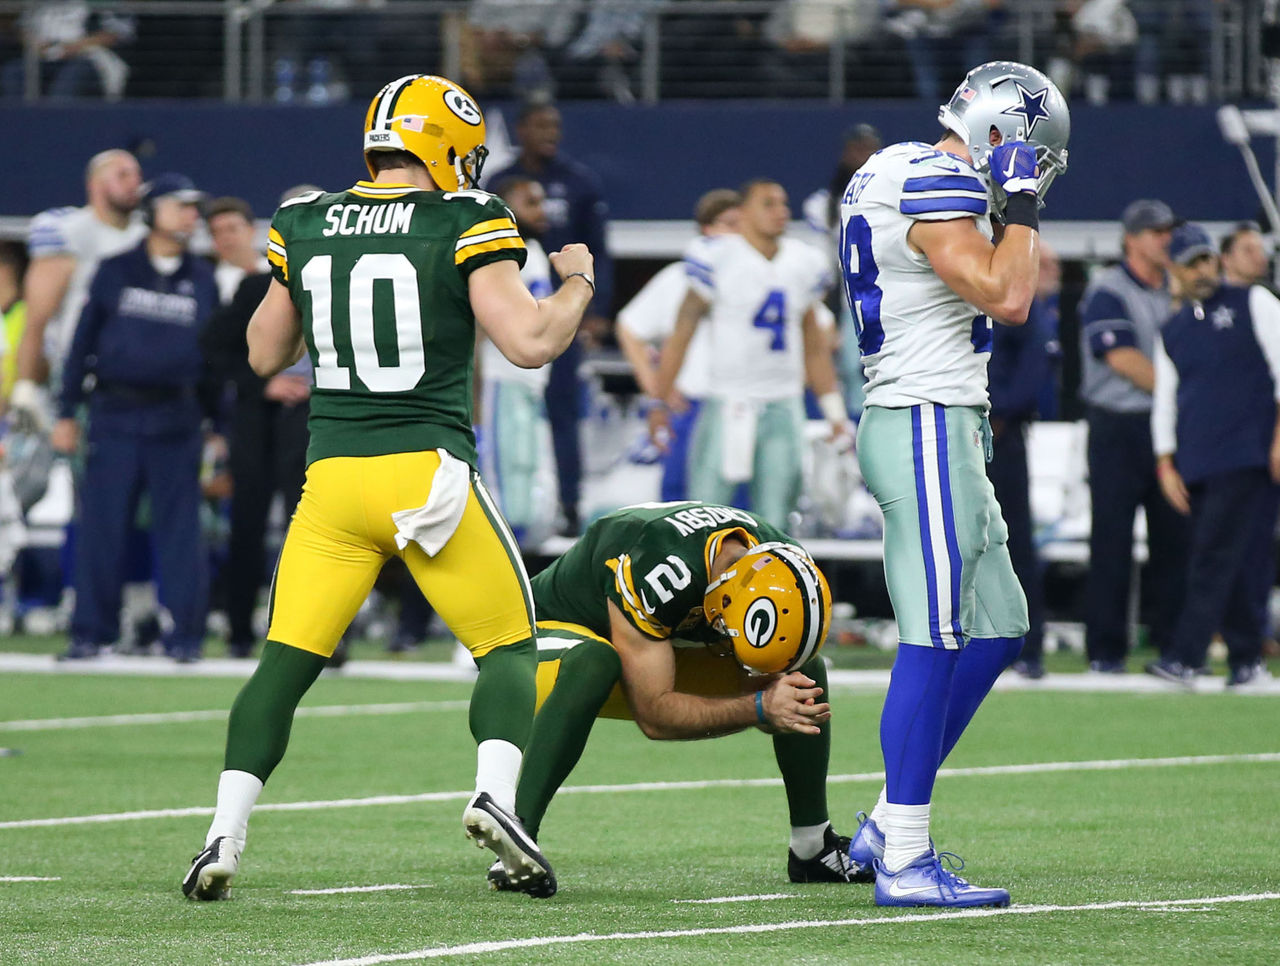 Cropped 2017 01 16t010339z 1792711806 nocid rtrmadp 3 nfl nfc divisional green bay packers at dallas cowboys